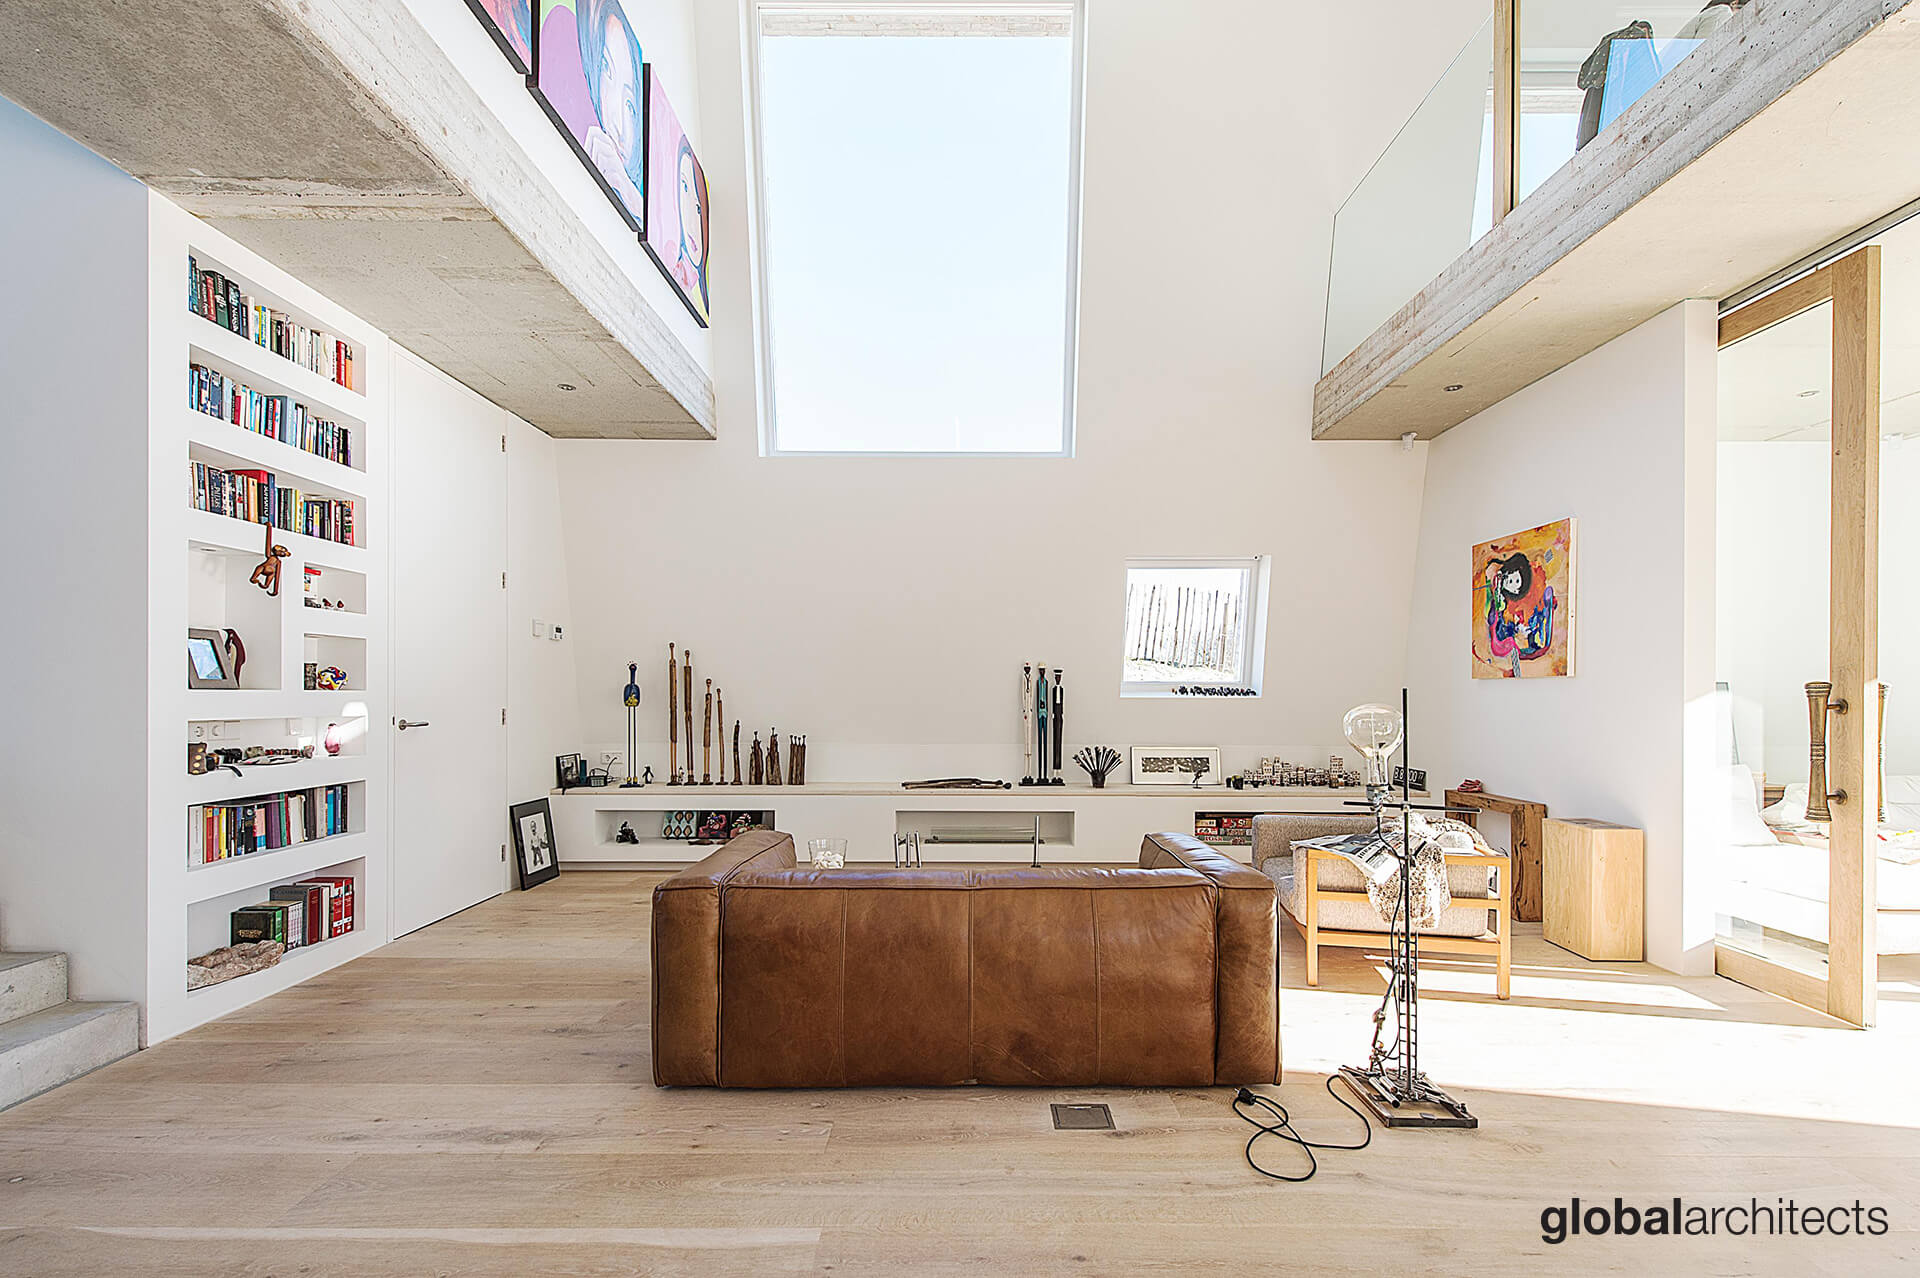 Global architects architect expats the hague amsterdam